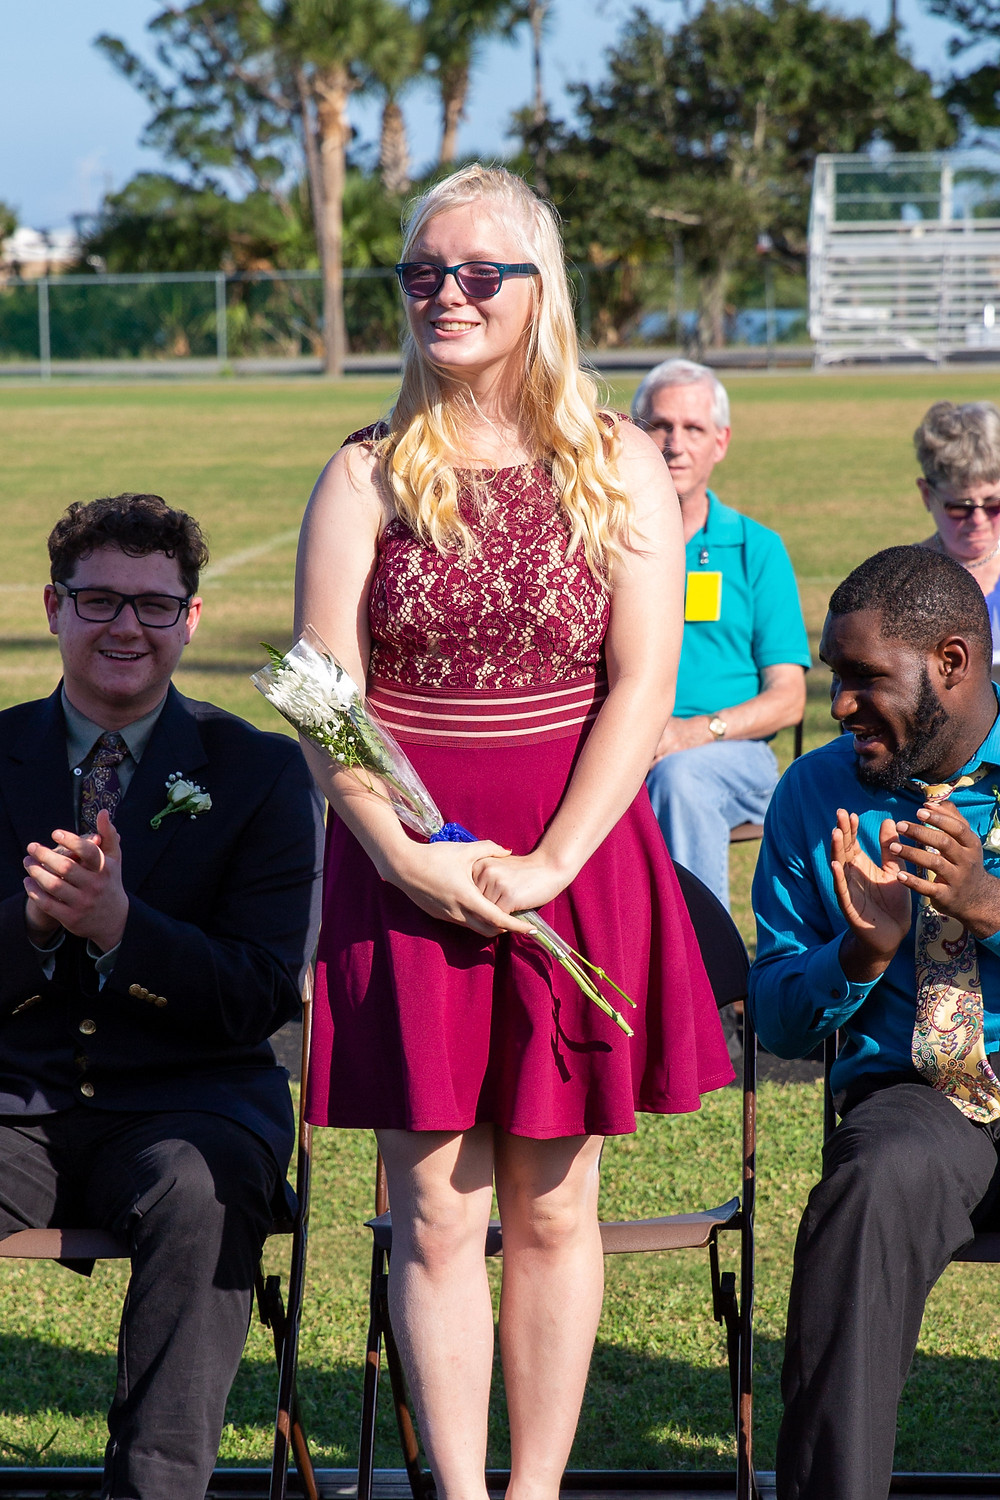 Veronica Hyatt on Blind Homecoming Court 2019.